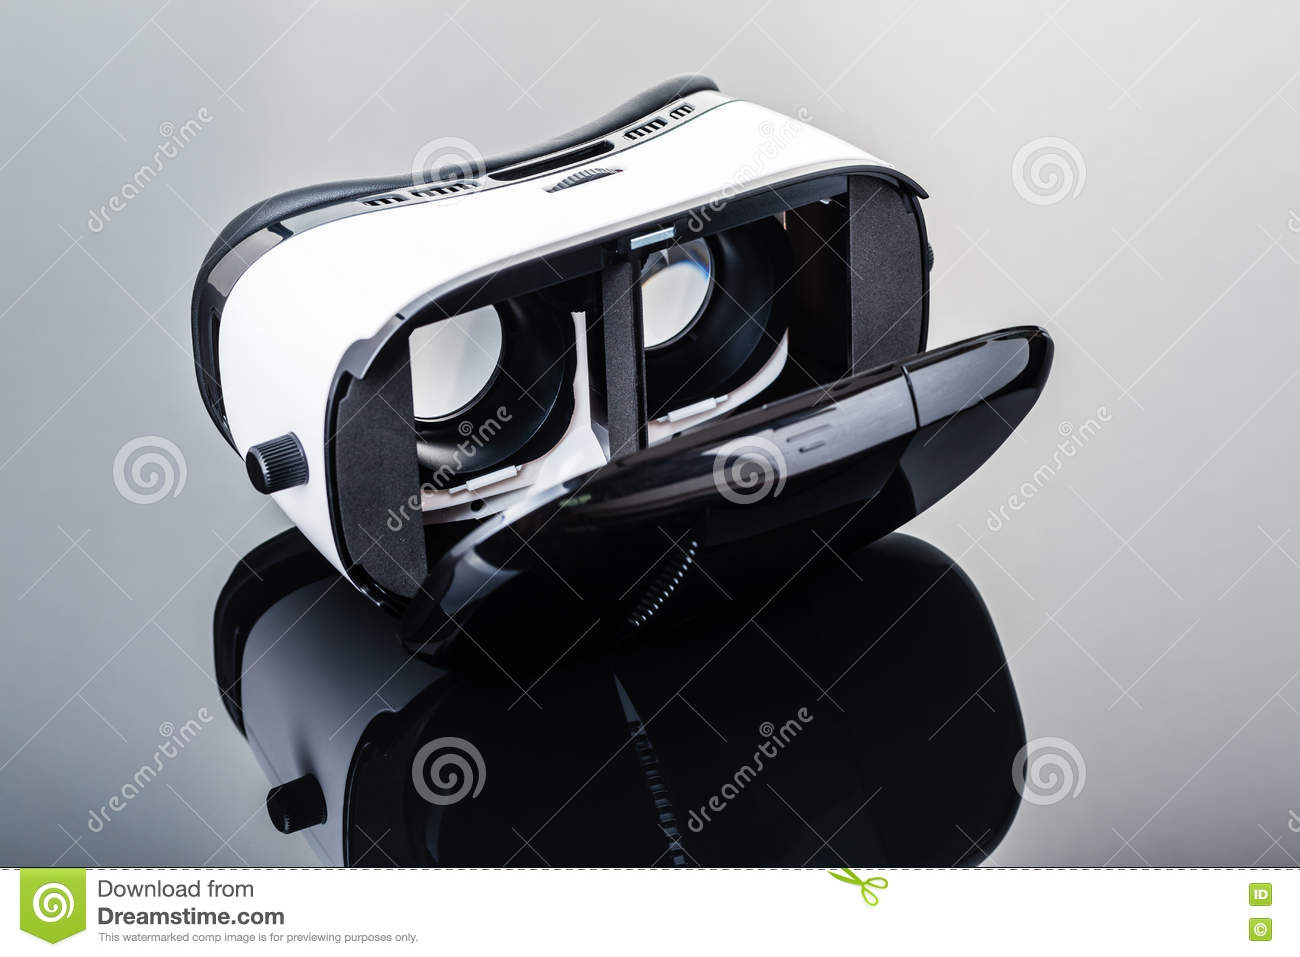 VR Viewer device stock image  Image of display, interactive